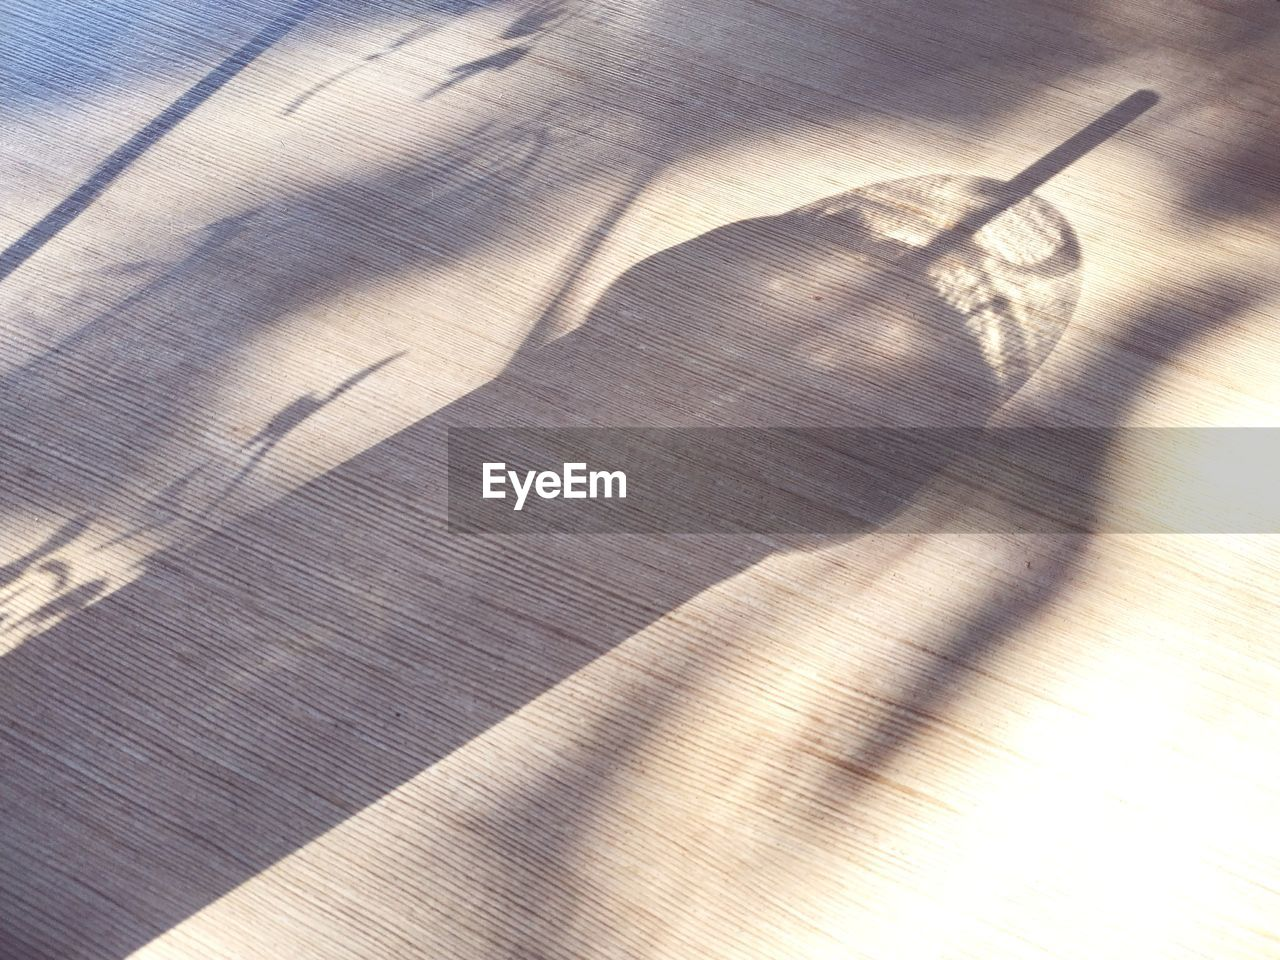 shadow, sunlight, high angle view, no people, wood - material, hardwood floor, close-up, textured, wood, nature, table, day, backgrounds, indoors, flooring, pattern, full frame, single object, textile, wood grain, focus on shadow